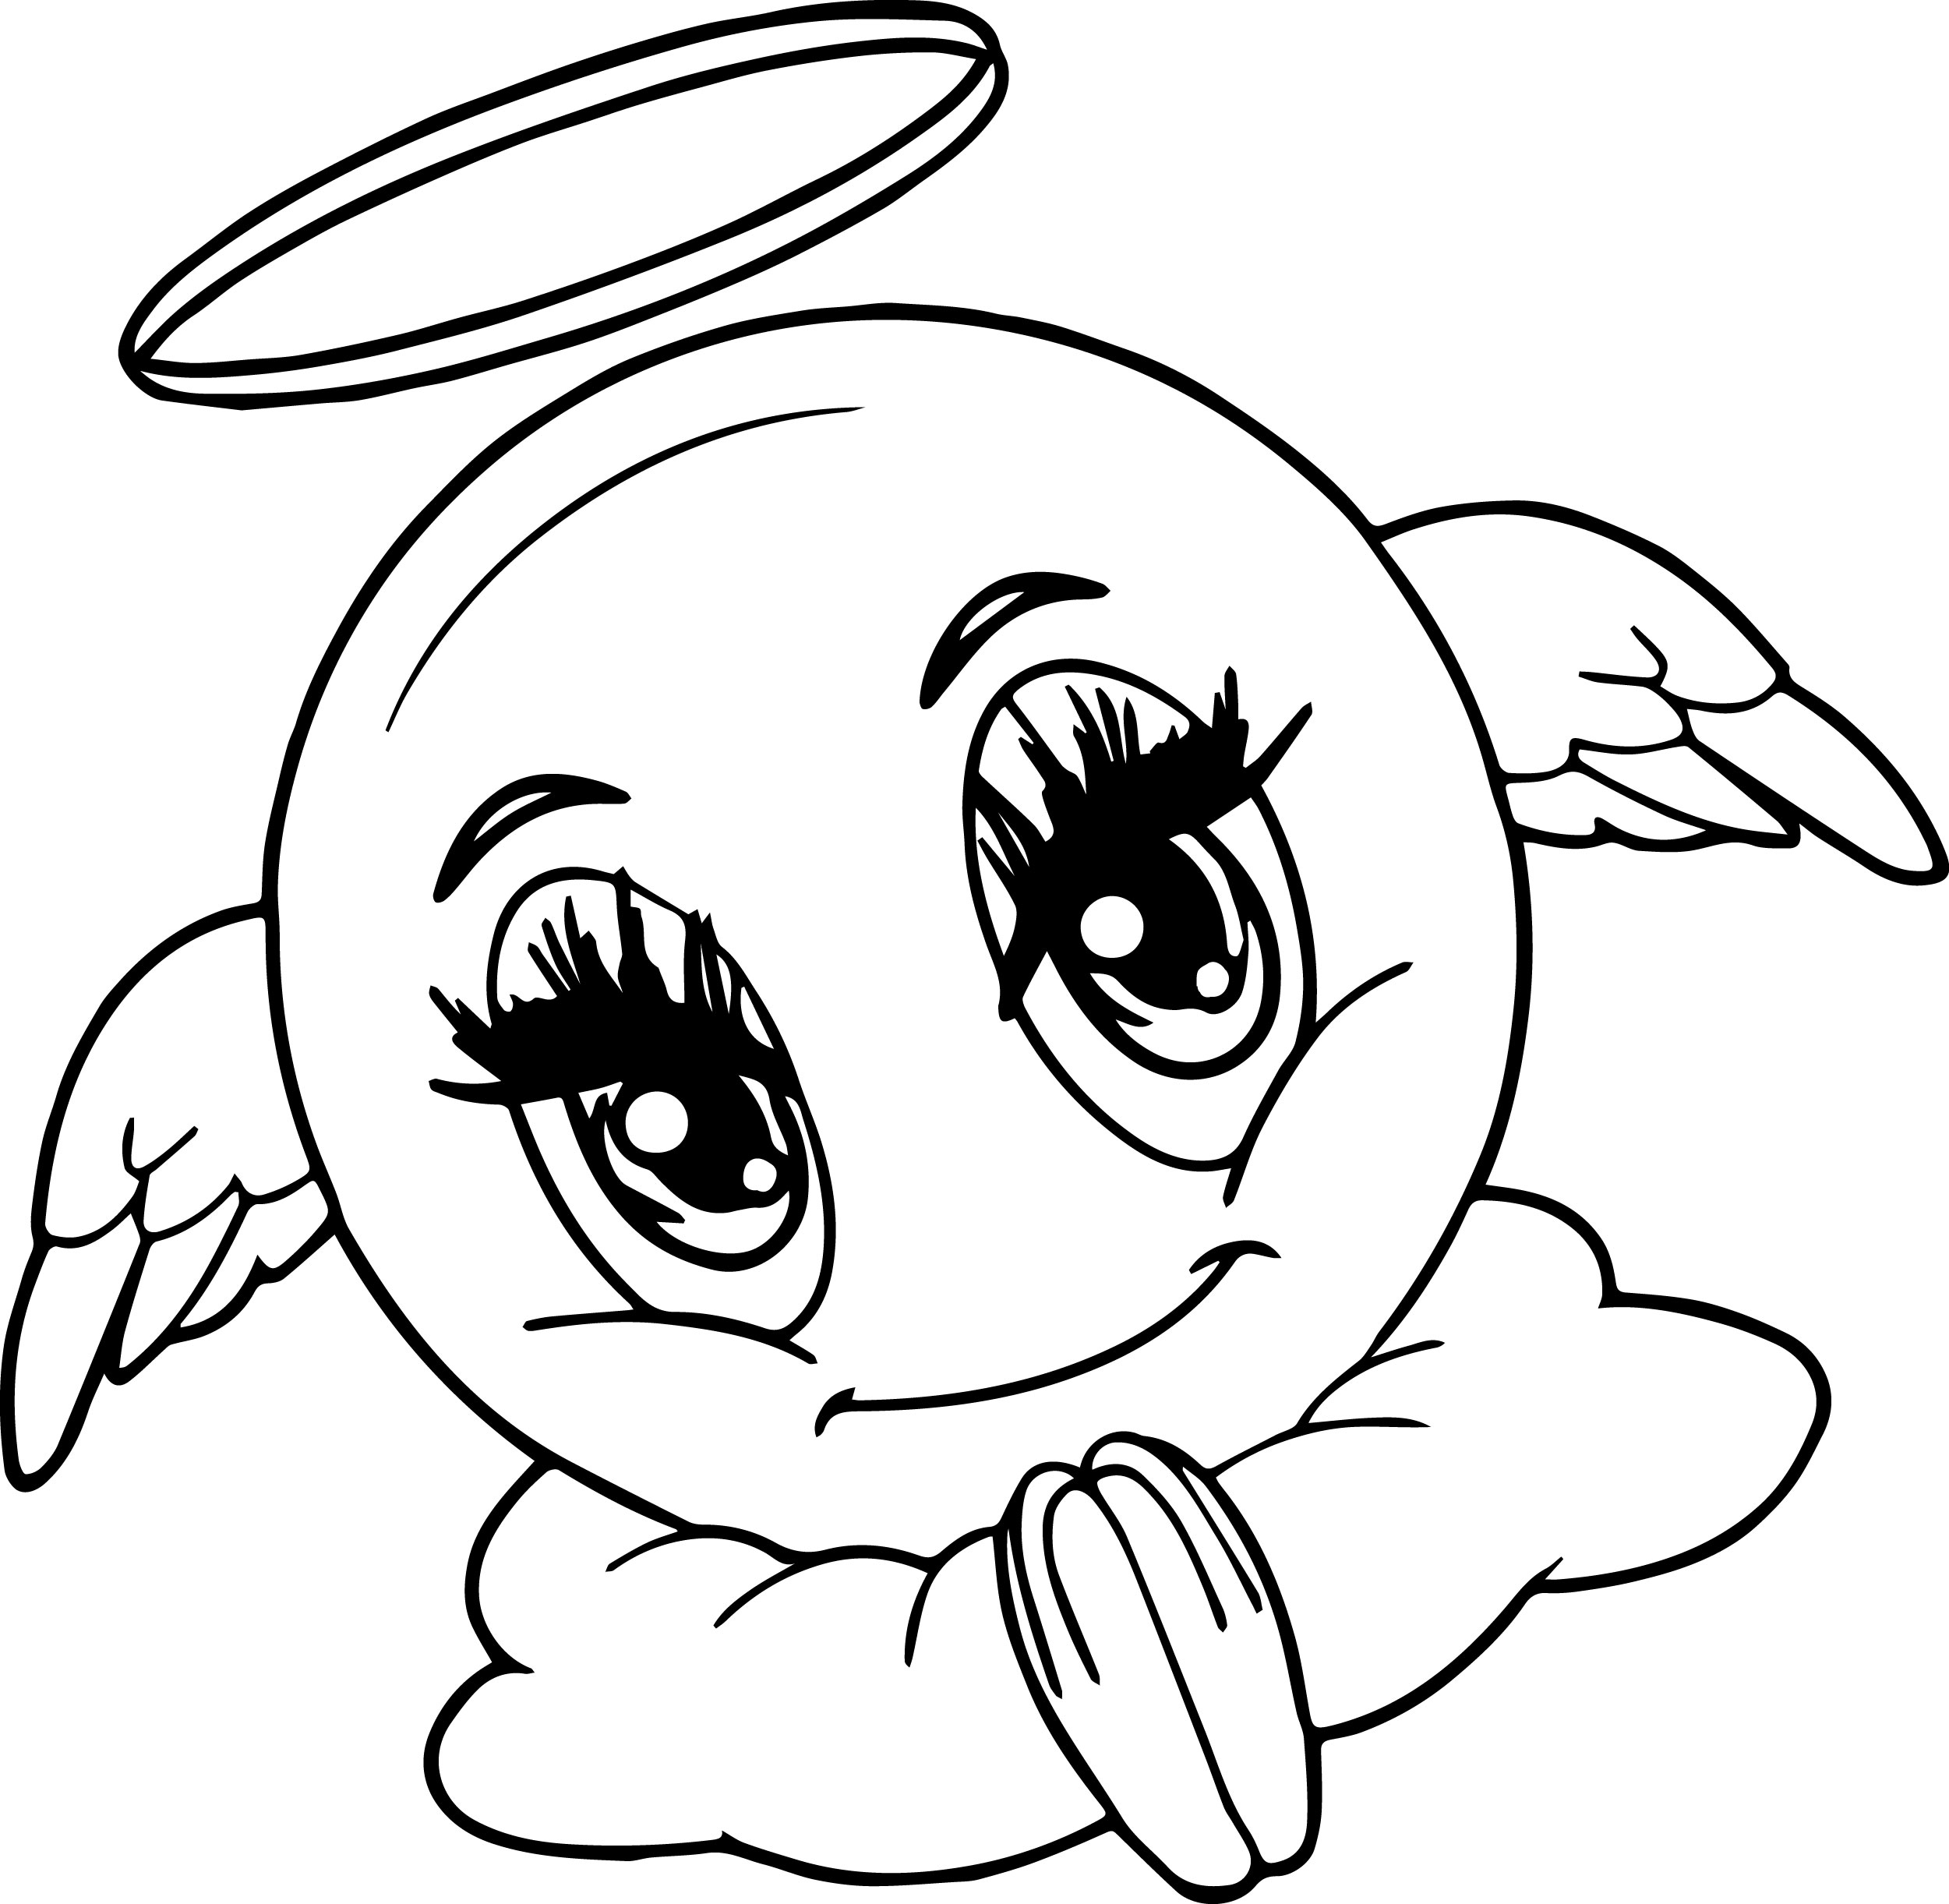 Angel Emoticon Face Coloring Page Wecoloringpage